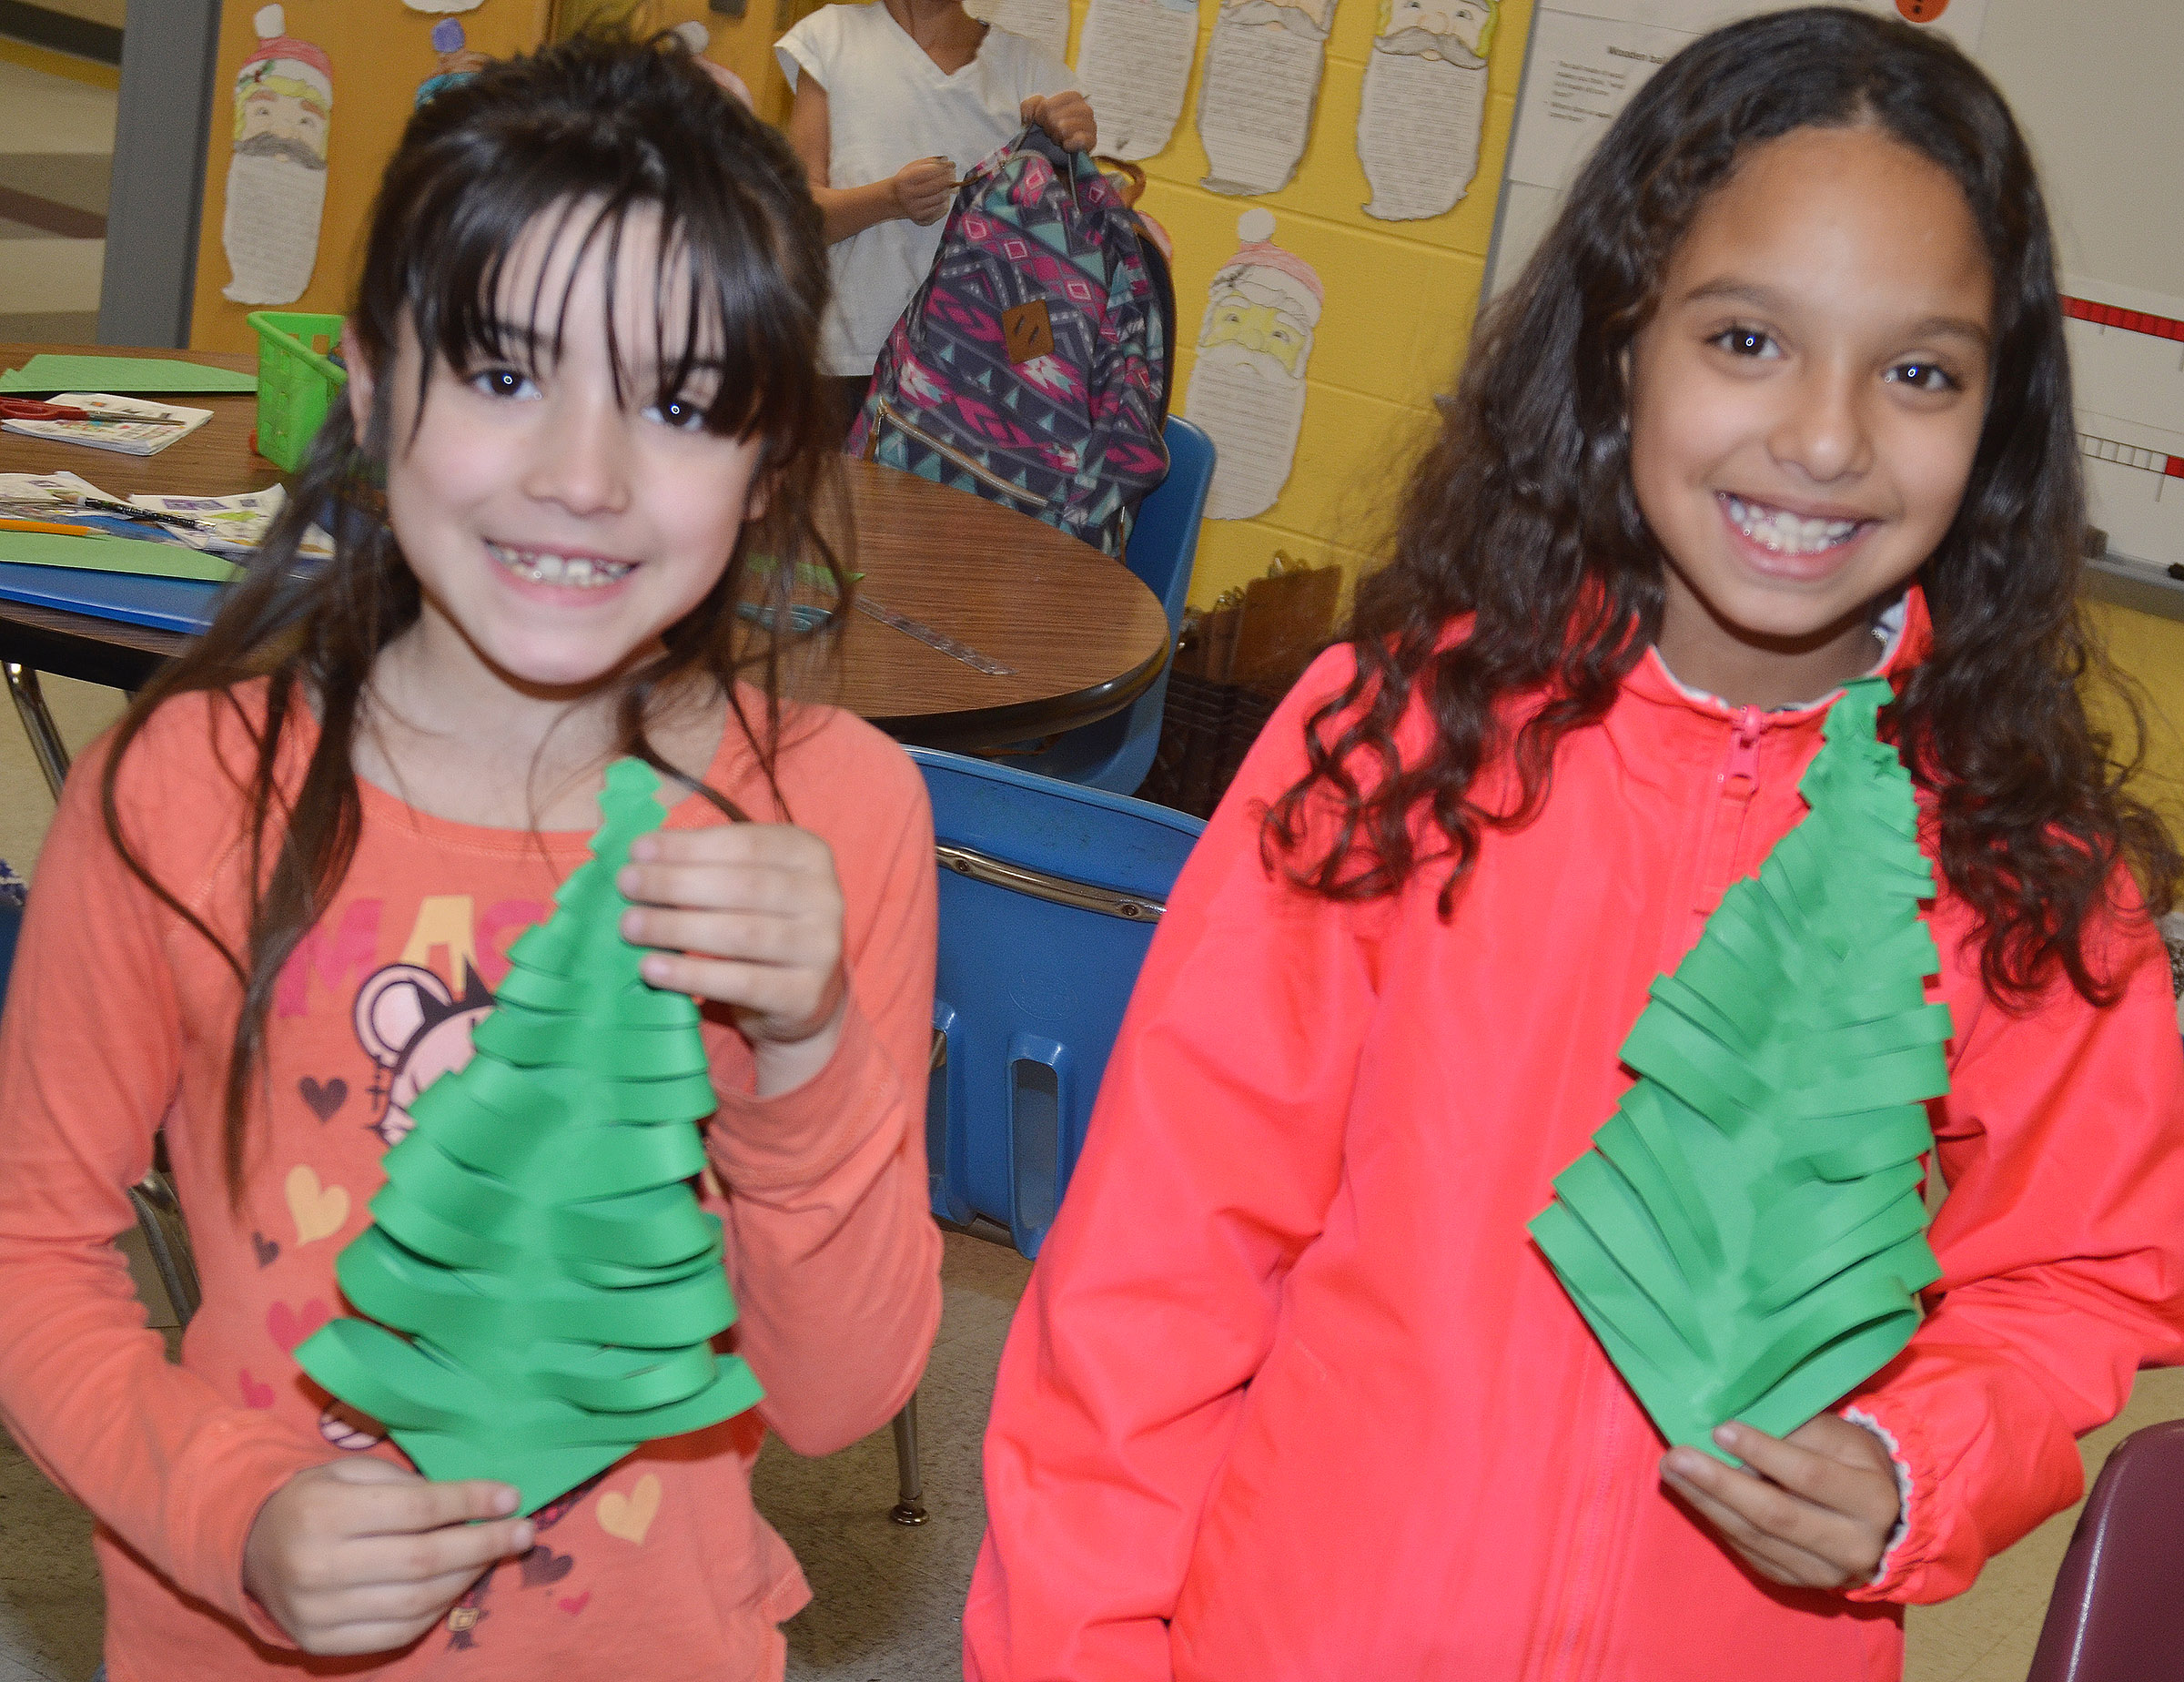 CES third-graders Zehavah Negron, at left, and Alyssa Knezevic hold their finished Christmas trees.